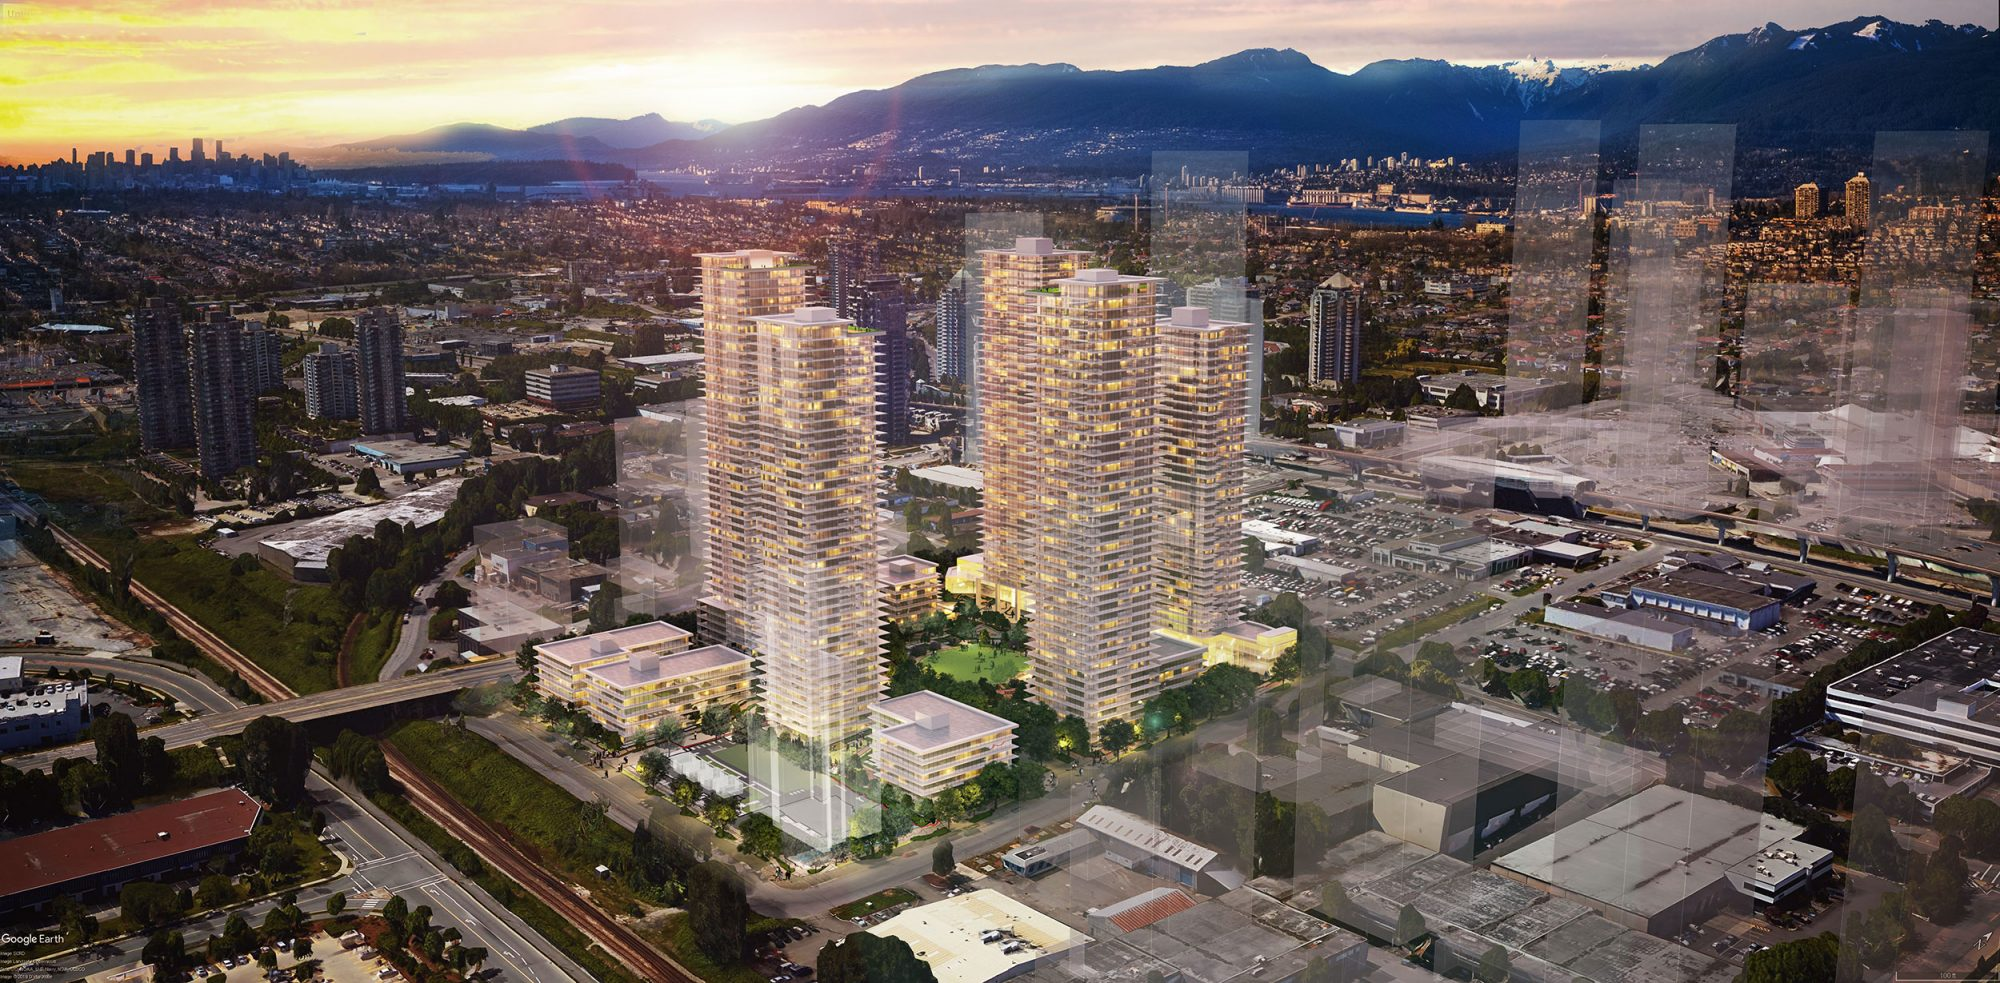 Aoyuan International's Brentwood site includes towers up to 51 storeys